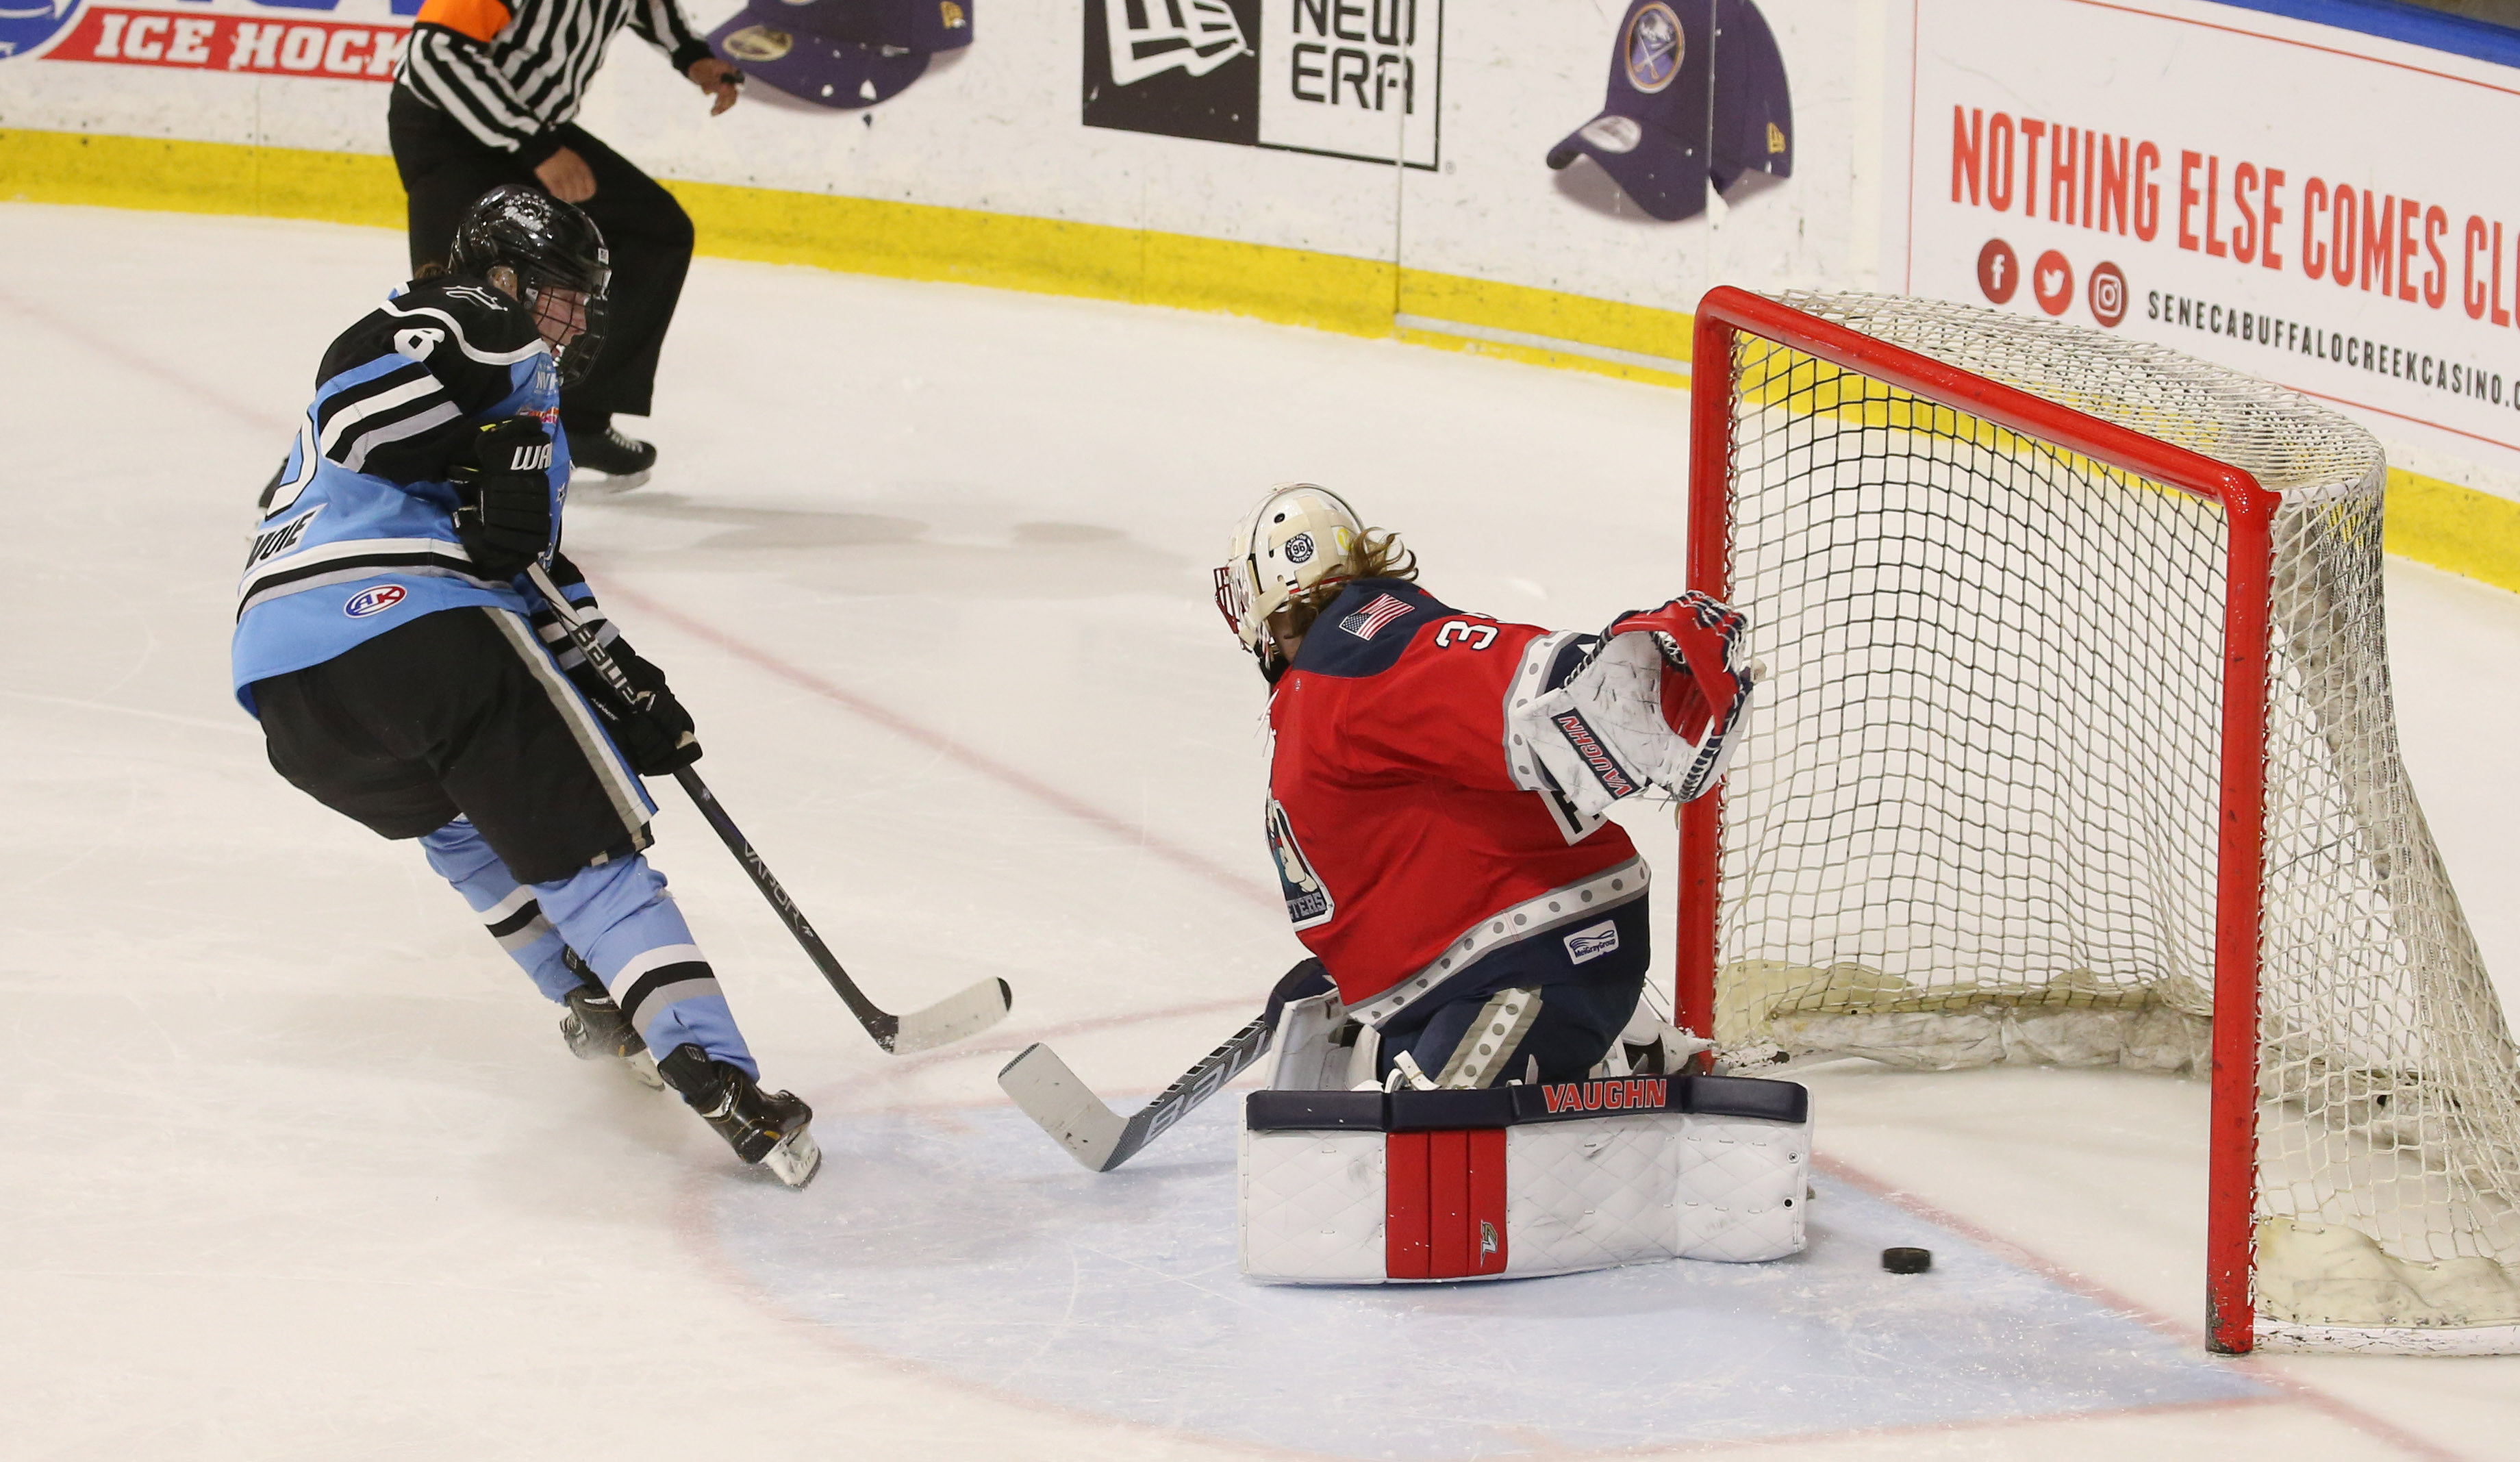 Kristina Lavoie scores the lone shootout goal past Riveters goalie Katie Fitzgerald to give the Beauts a 4-3 win Friday. (Sharon Cantillon/Buffalo News)